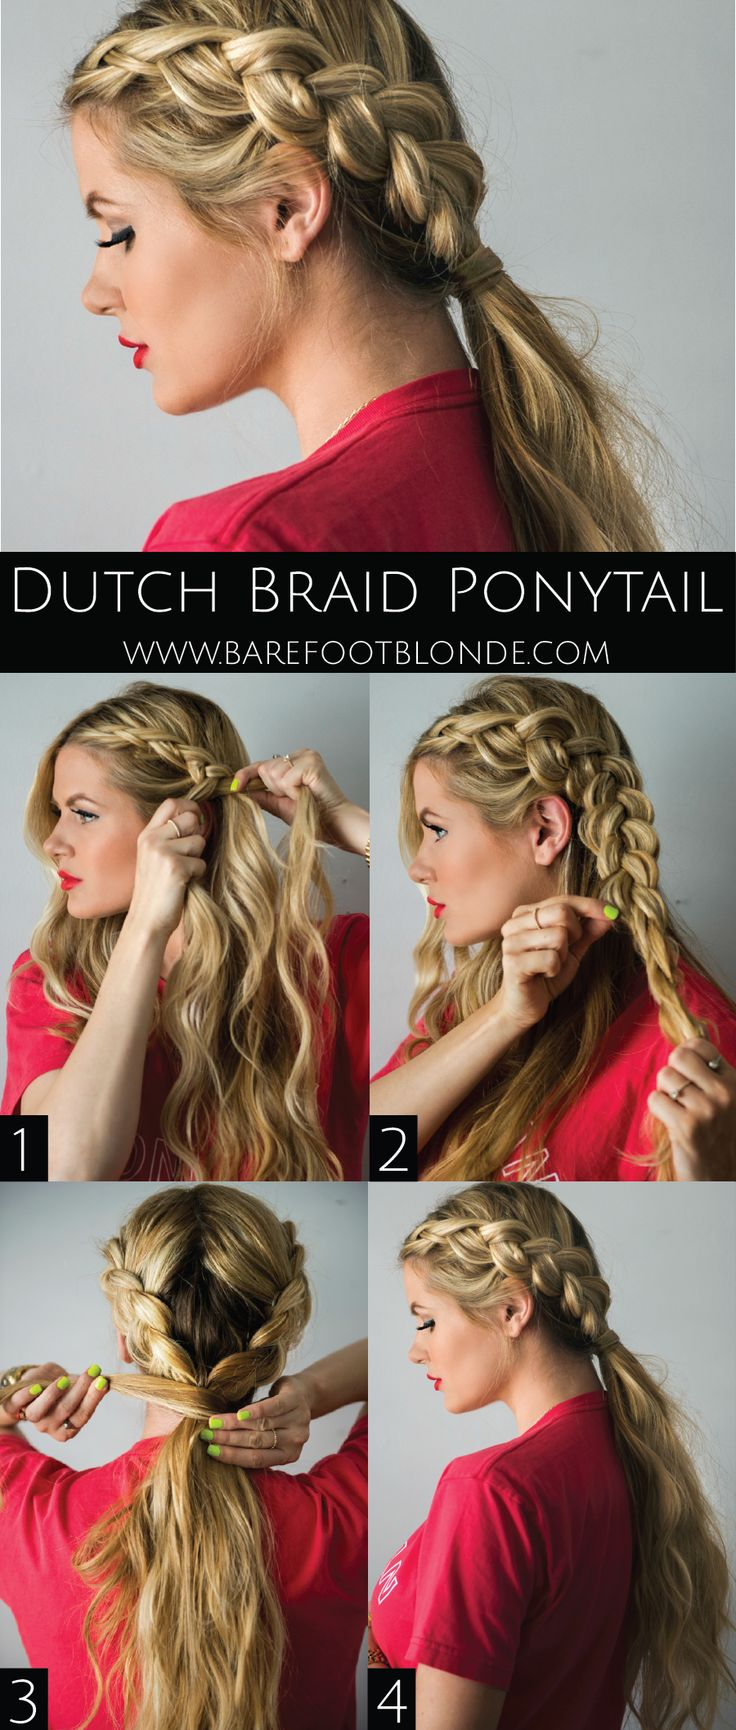 17 Stunning Dutch Braid Hairstyles With Tutorials - Pretty